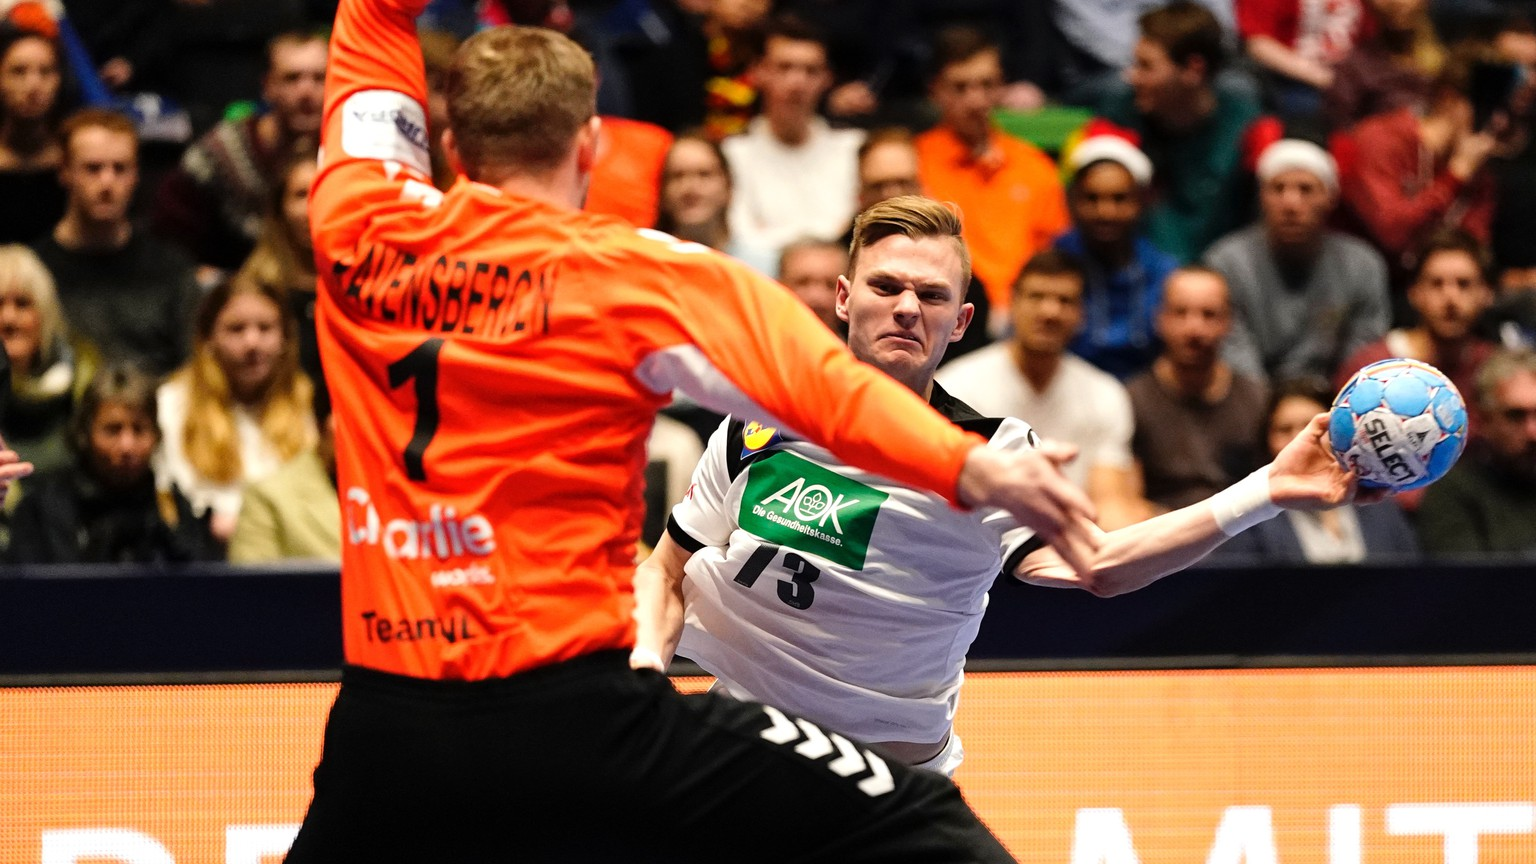 epa08114996 Timo Kastening of Germany and goalkeeper Bart Ravensbergen of the Netherlands during the men's EHF Handball European Championship preliminary round match between Germany and the Netherlands, in Trondheim, Norway, 09 January 2020.  EPA/OLE MARTIN WOLD  NORWAY OUT